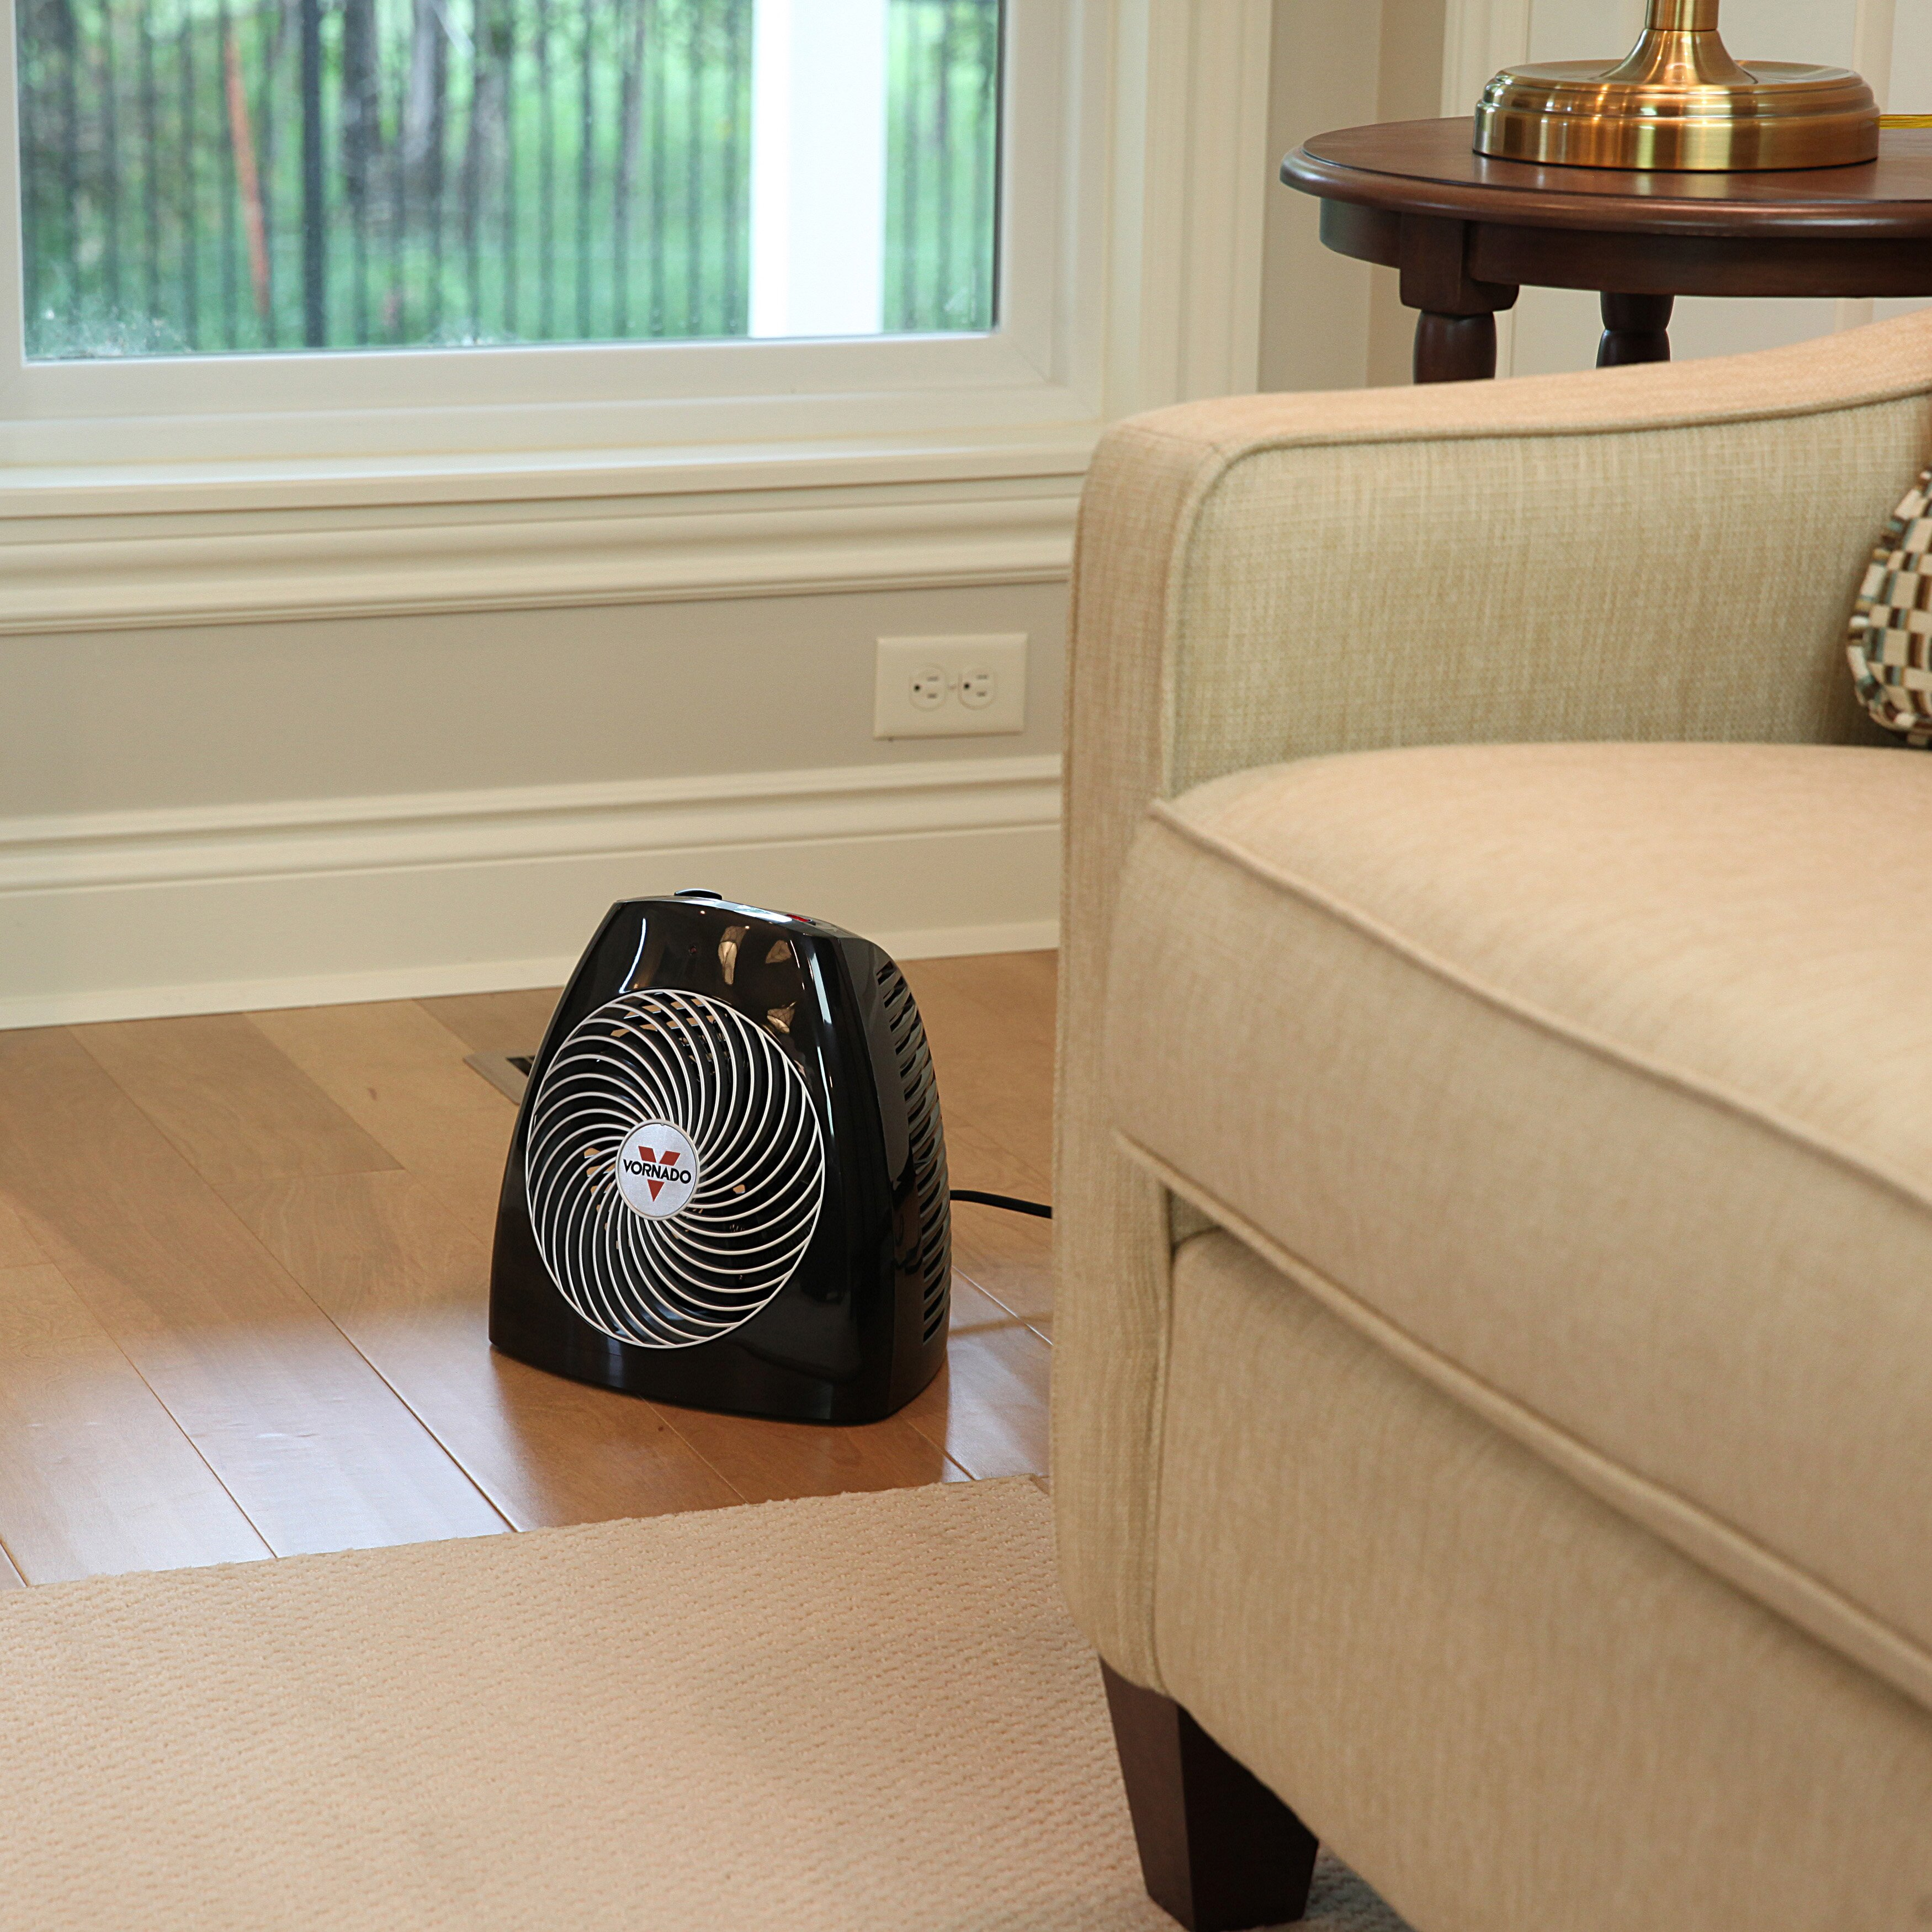 Watt Portable Electric Fan Compact Heater with Adjustable Thermostat